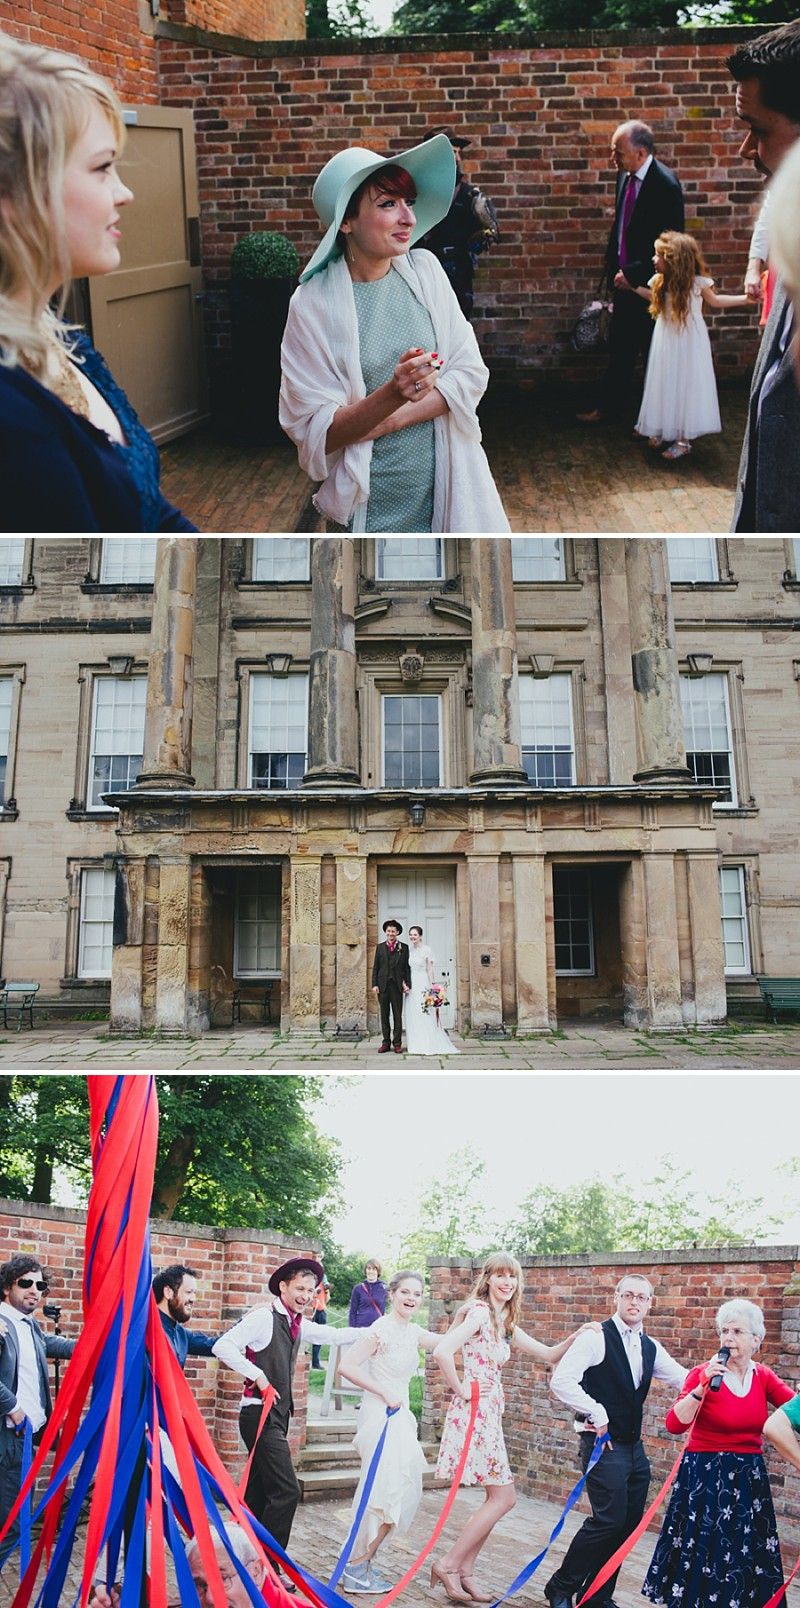 An alternative rock n roll wedding at Calke Abbey in Derbyshire with a bride in a Kula Tsurdiu gown and the most beautiful flowers by Honeysuckle and Castle_0211